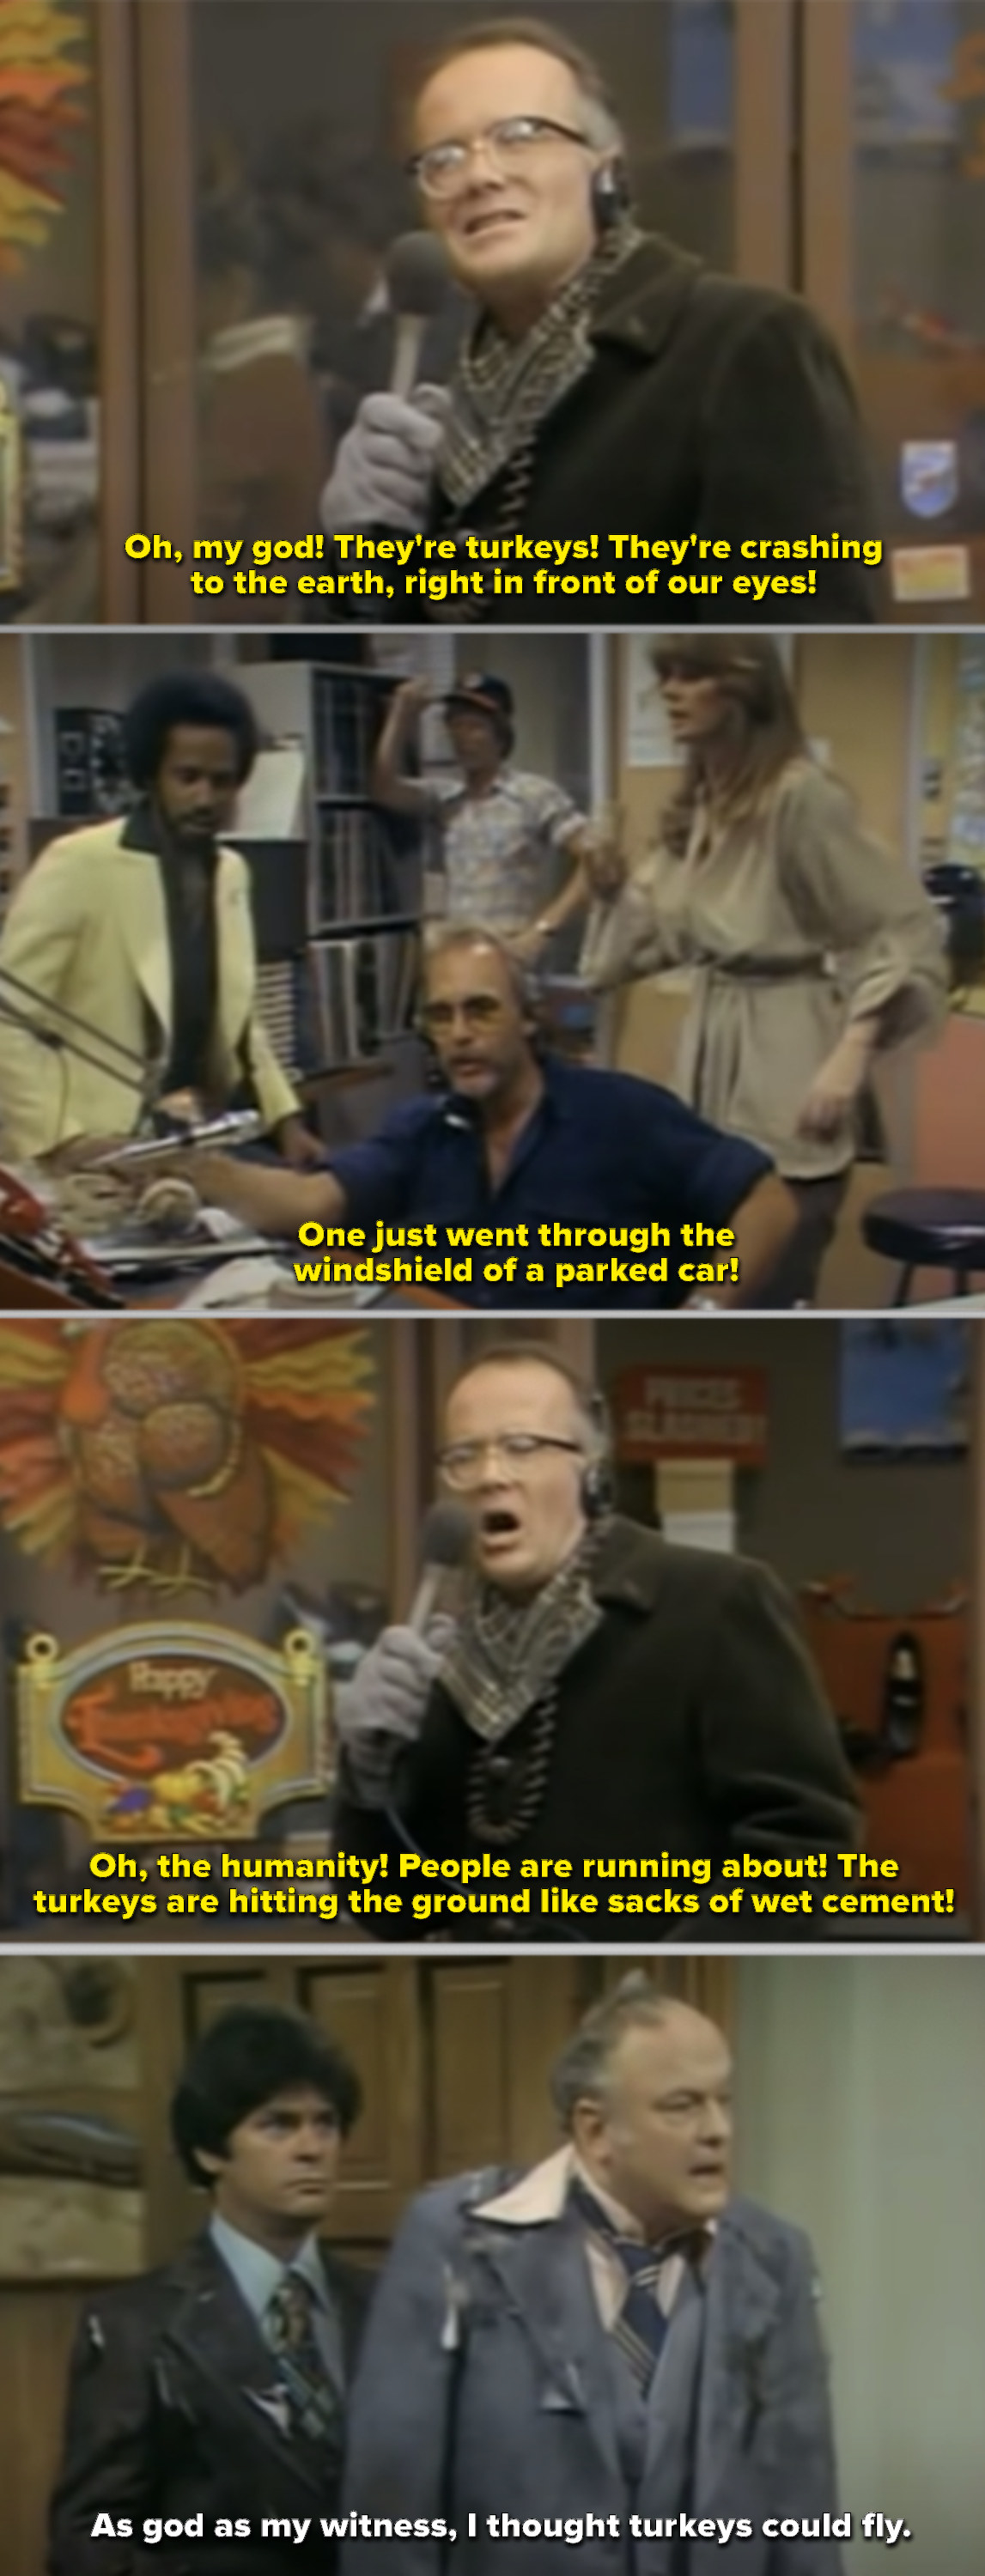 Les Nessman reporting in front of a grocery story while turkeys fall from the sky